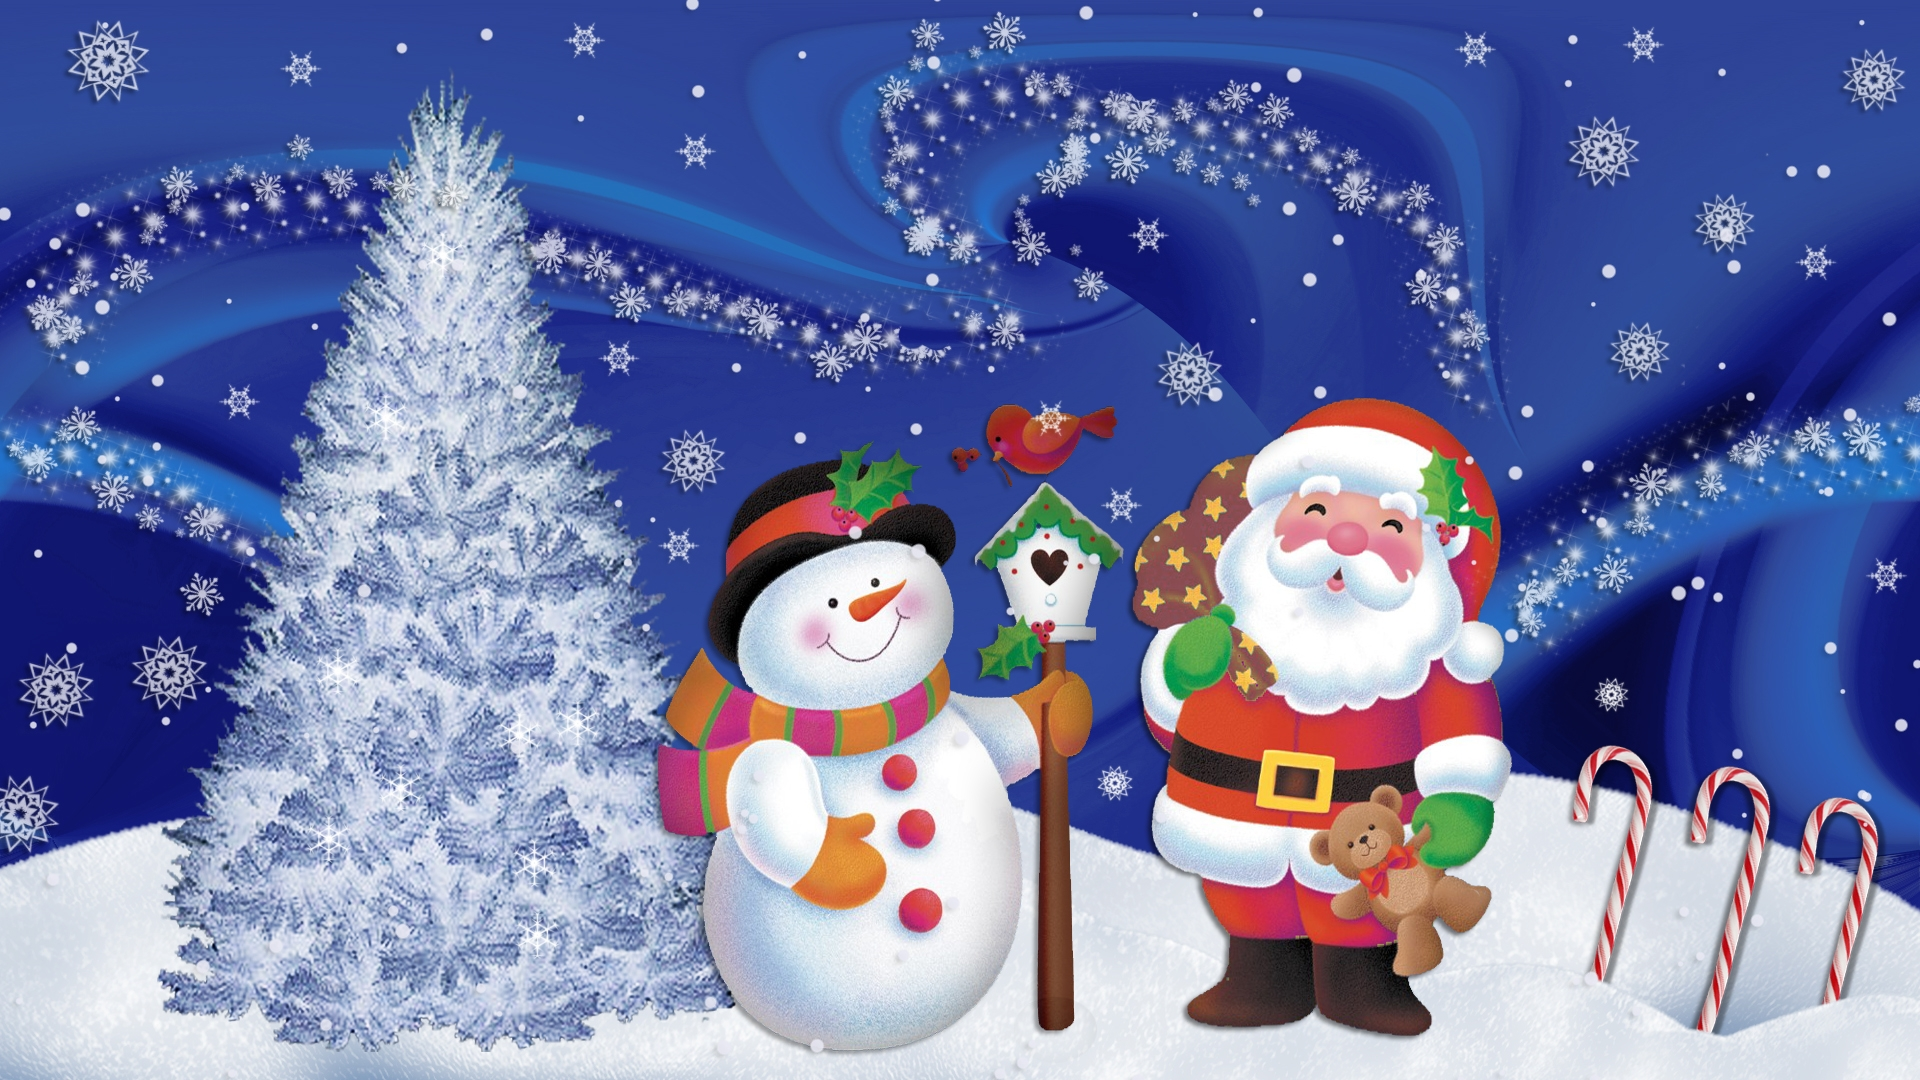 Free Christmas Screensavers wallpaper | 1680x1050 | #79340